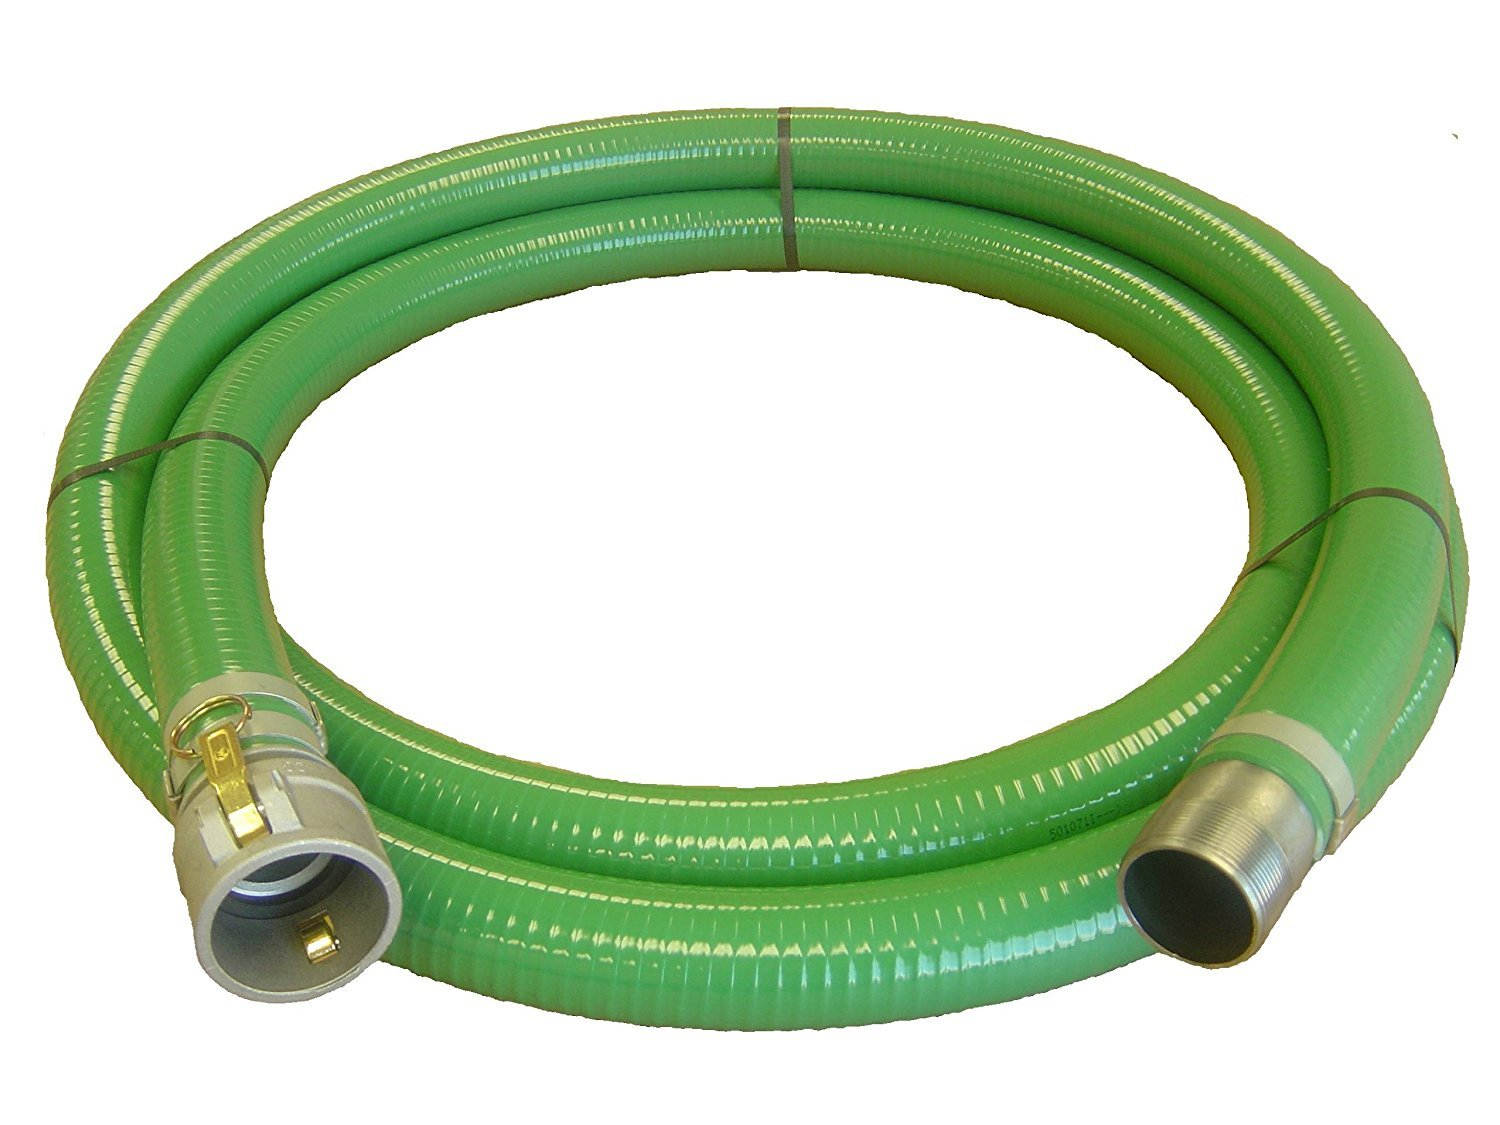 Abbott Rubber PVC Suction Hose Assembly, Green, 2'' Female Cam and Groove X Male NPT, 65 psi Max Pressure, 20' Length, 2'' ID